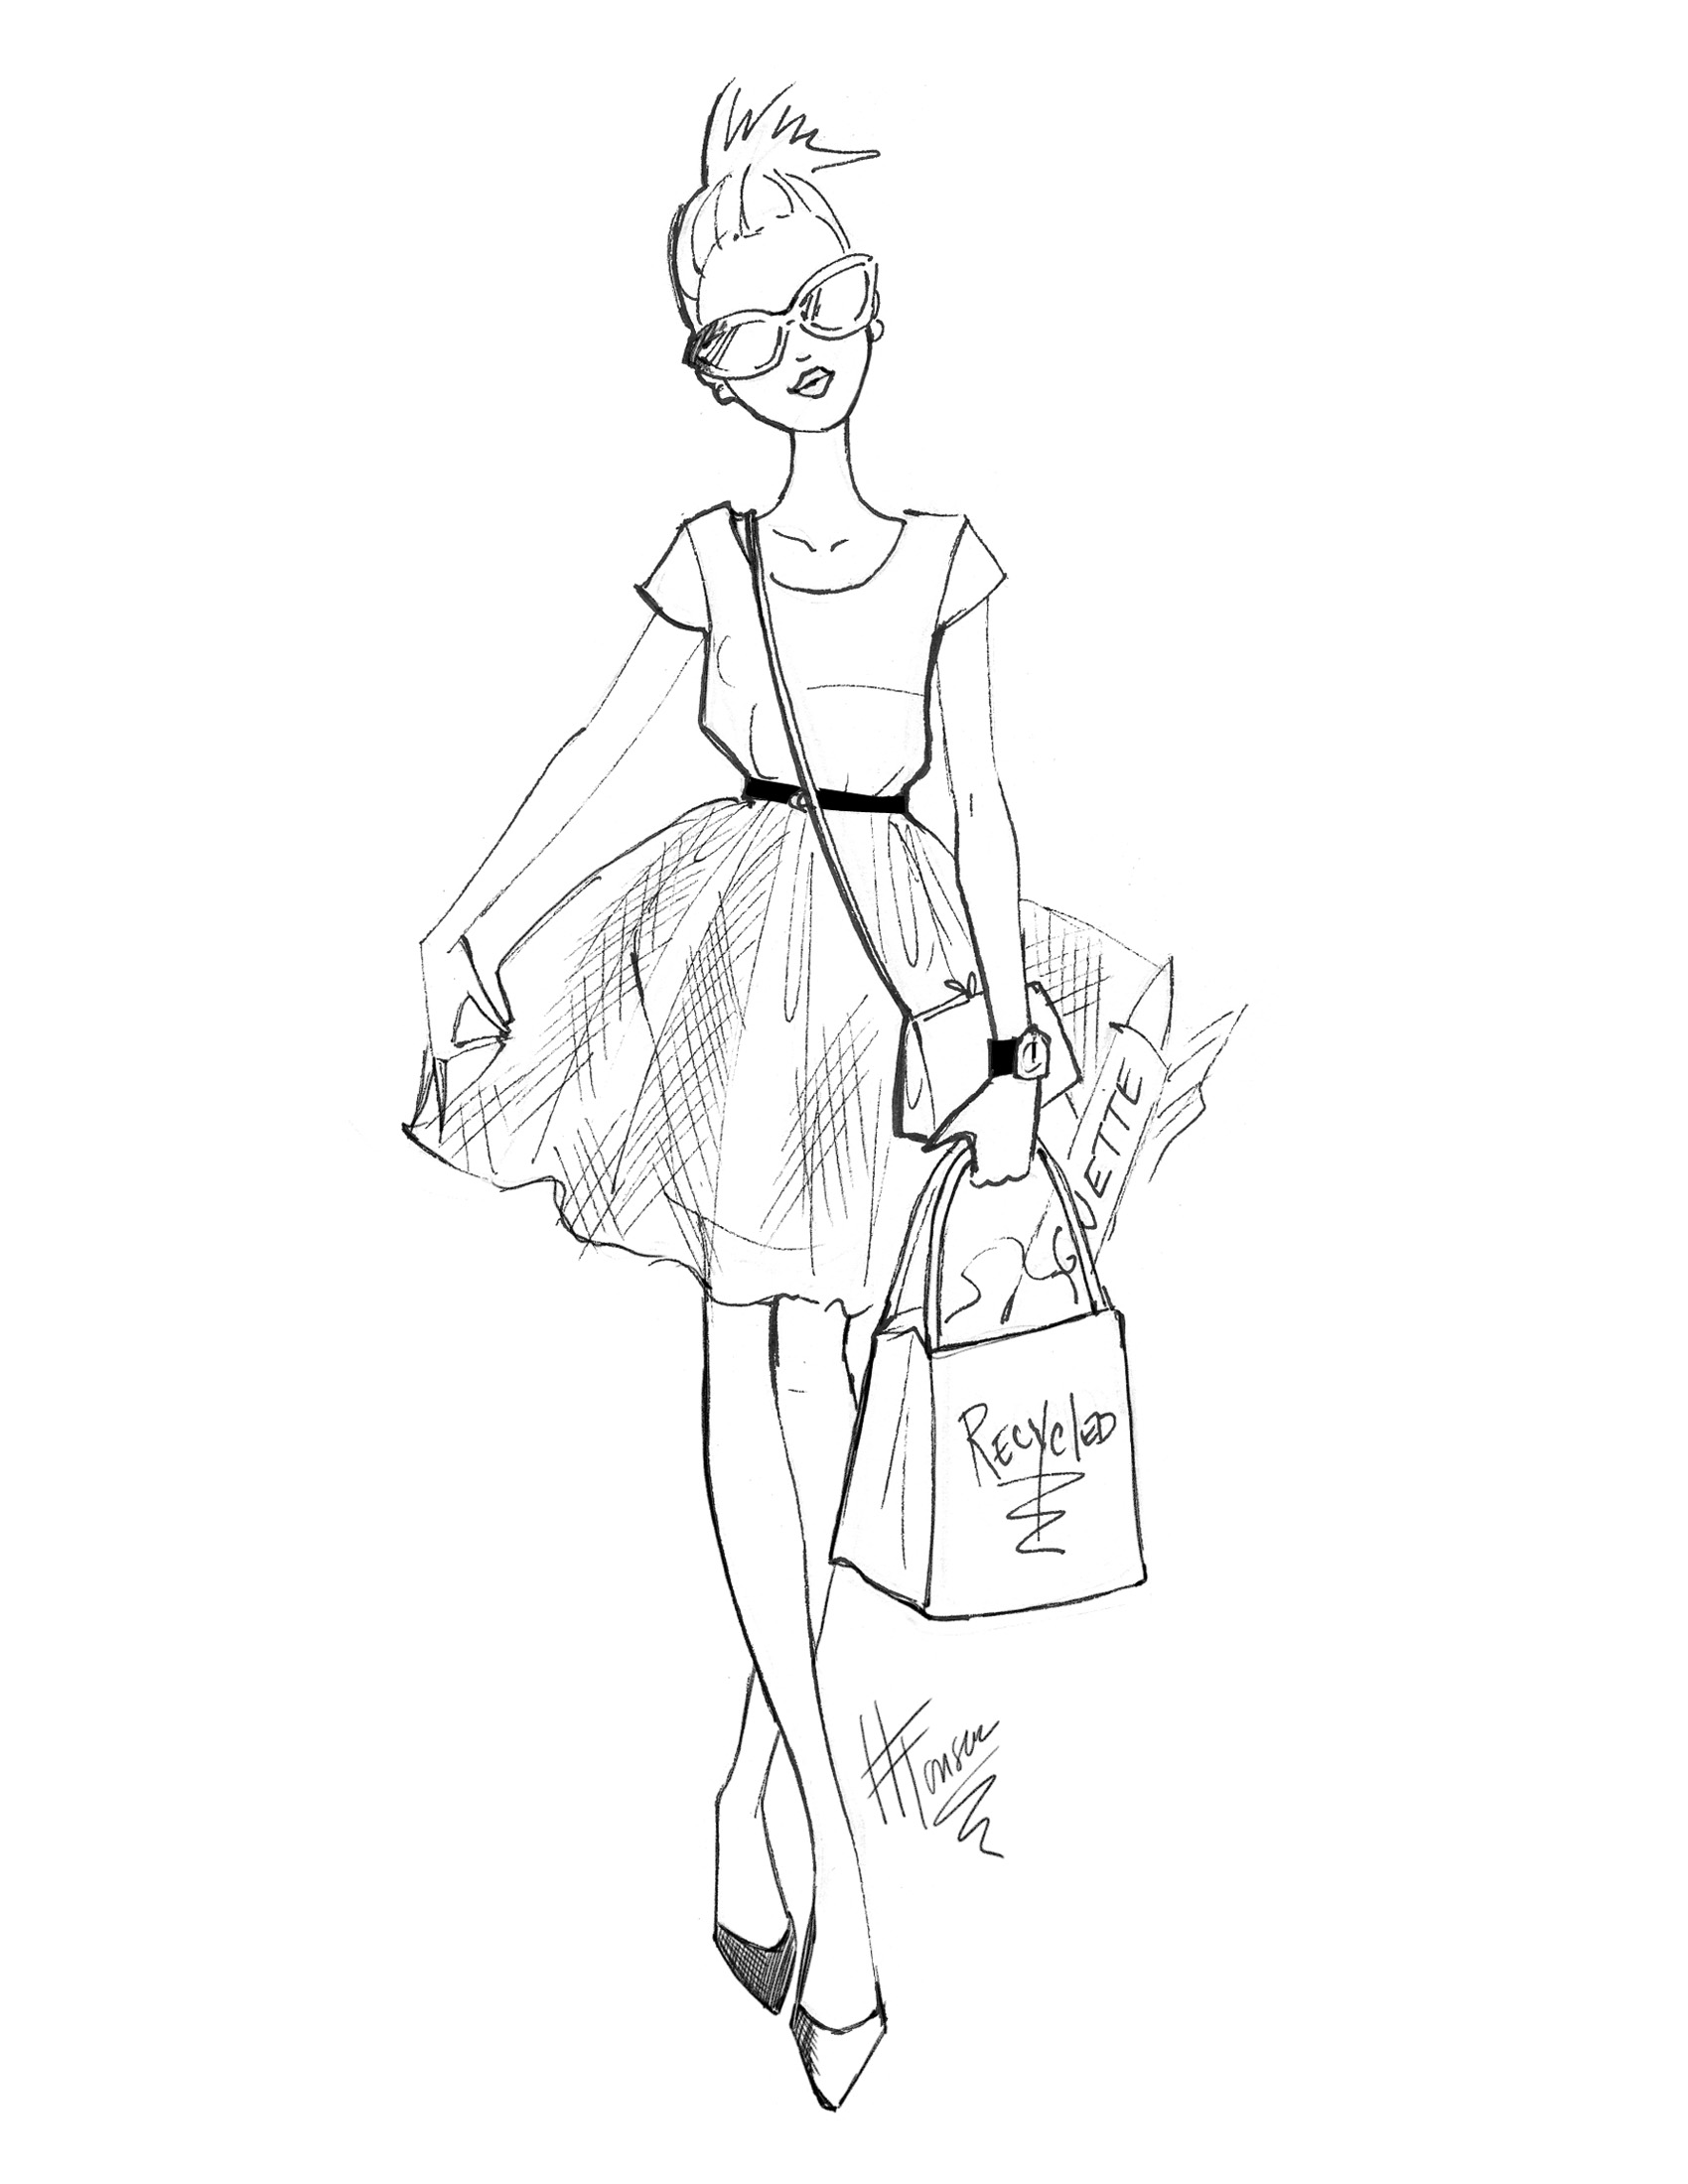 Black And White Fashion Sketches By Heather Fonseca At Coroflot